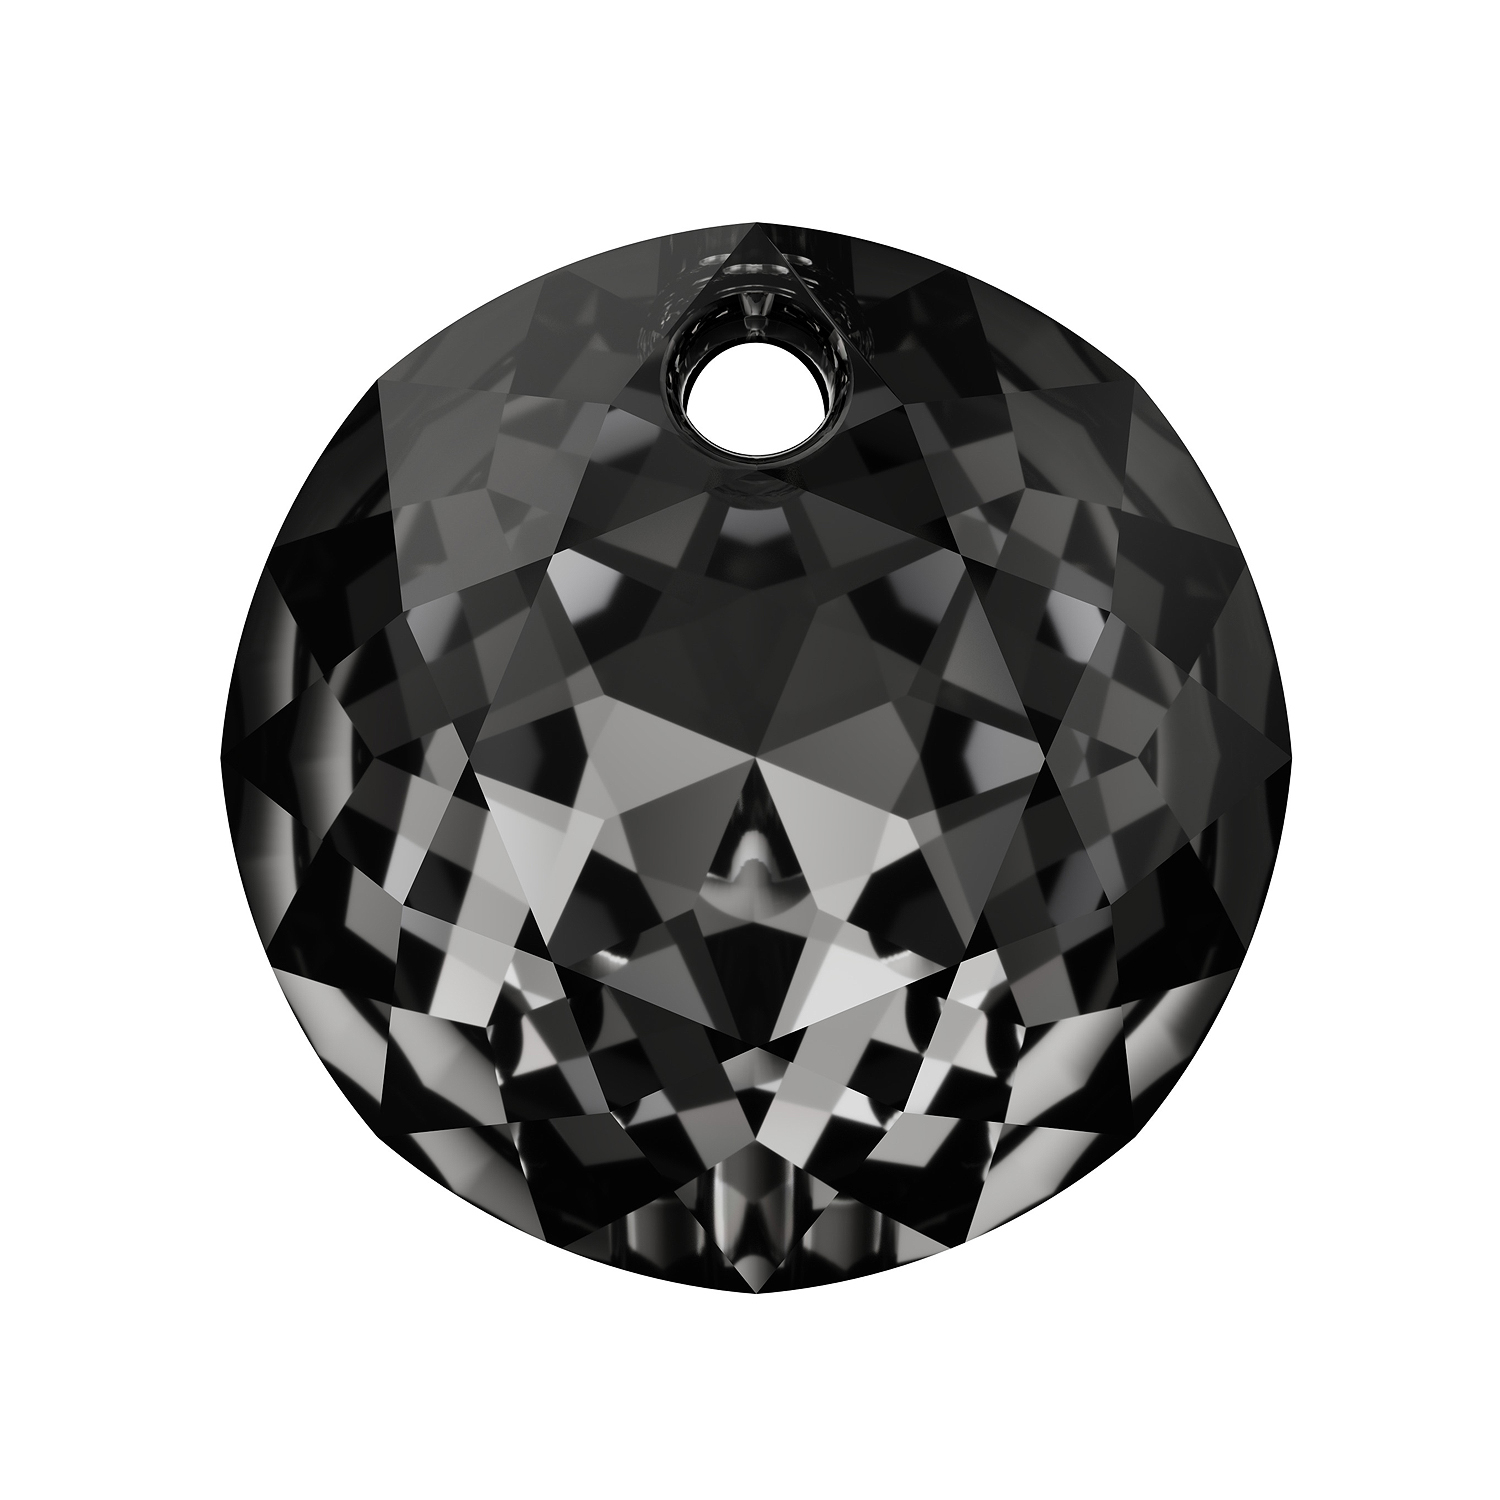 8bc45844f Swarovski Classic Cut Pendant 6430 10mm Crystal Silver Night | swarovski  crystal pendants wholesale for sale